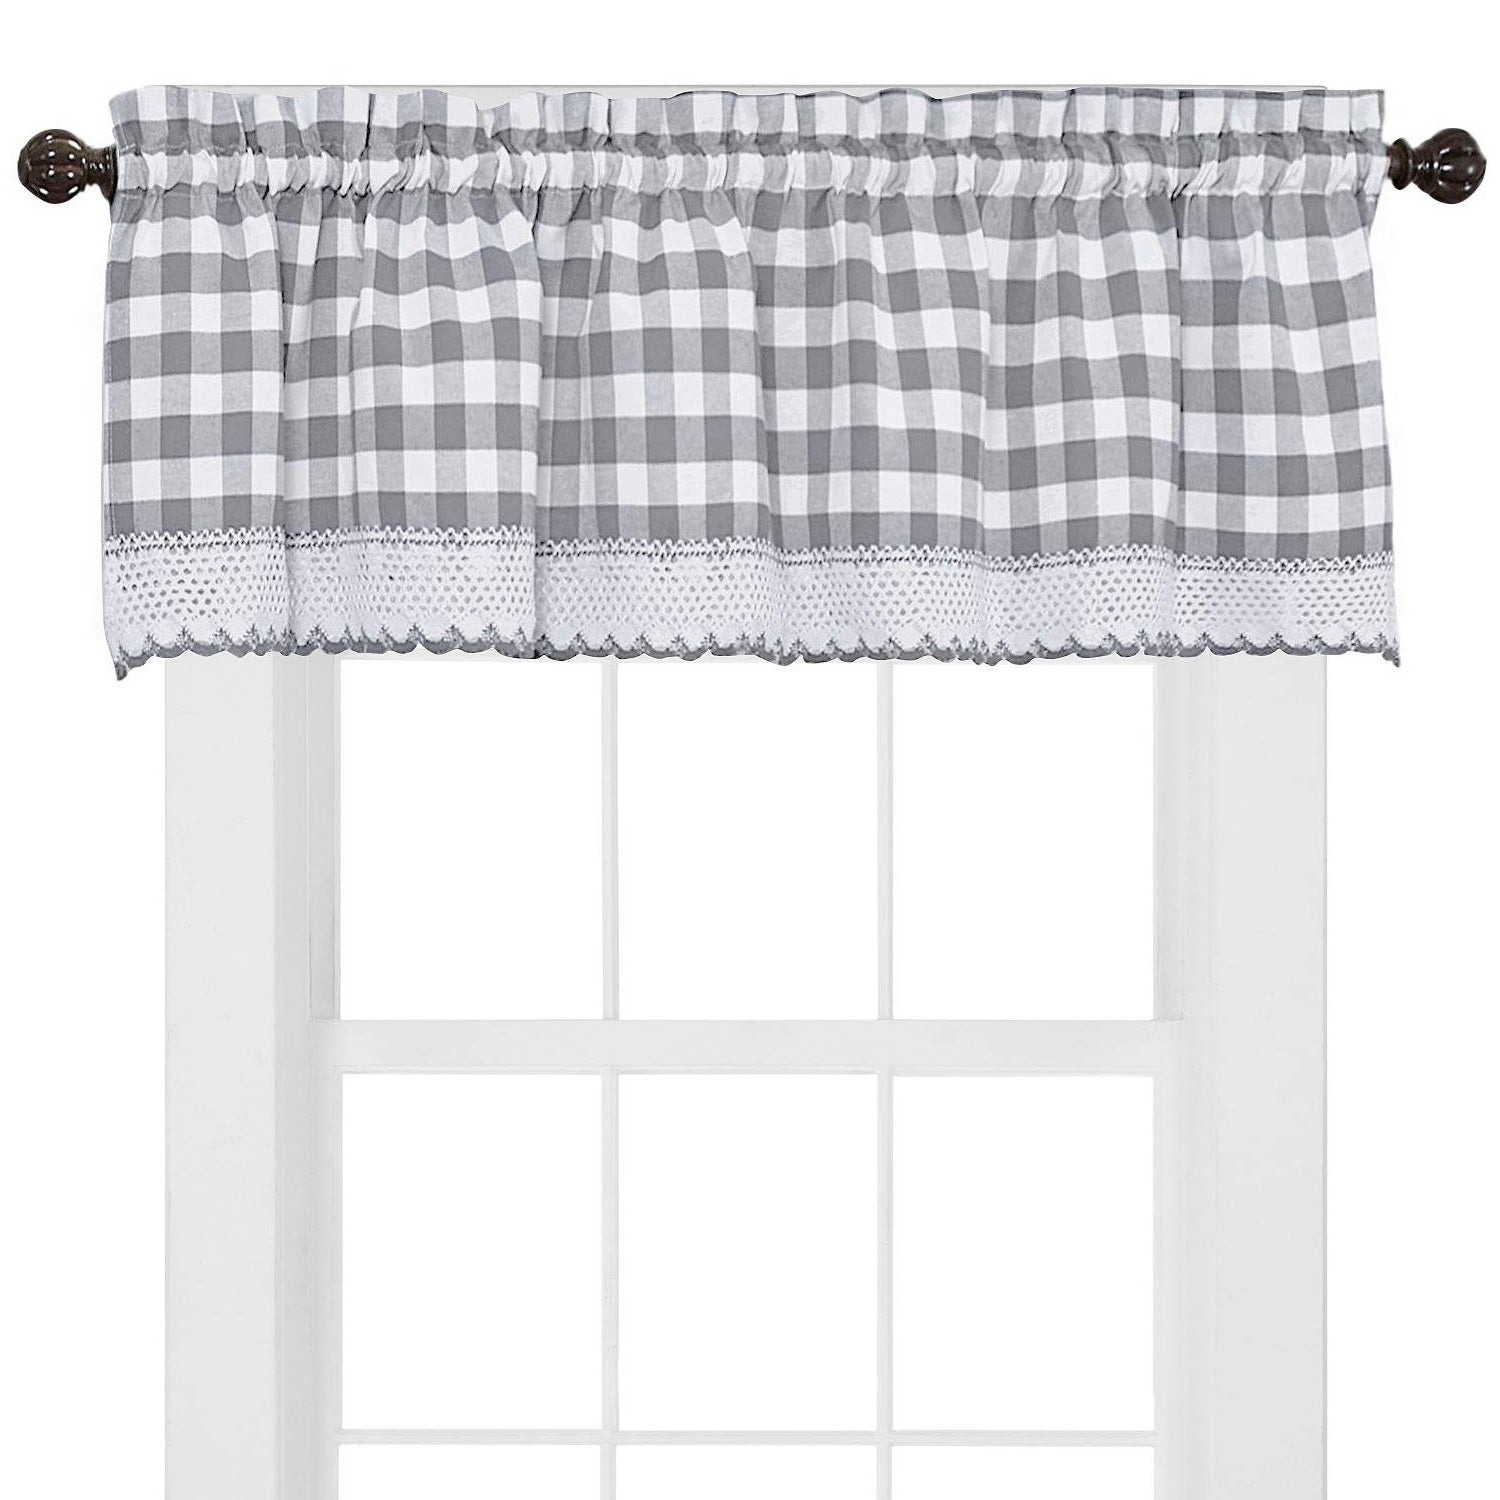 Buffalo Check Cotton Blend Grey Kitchen Curtain Valance With Regard To Cotton Blend Grey Kitchen Curtain Tiers (View 5 of 20)